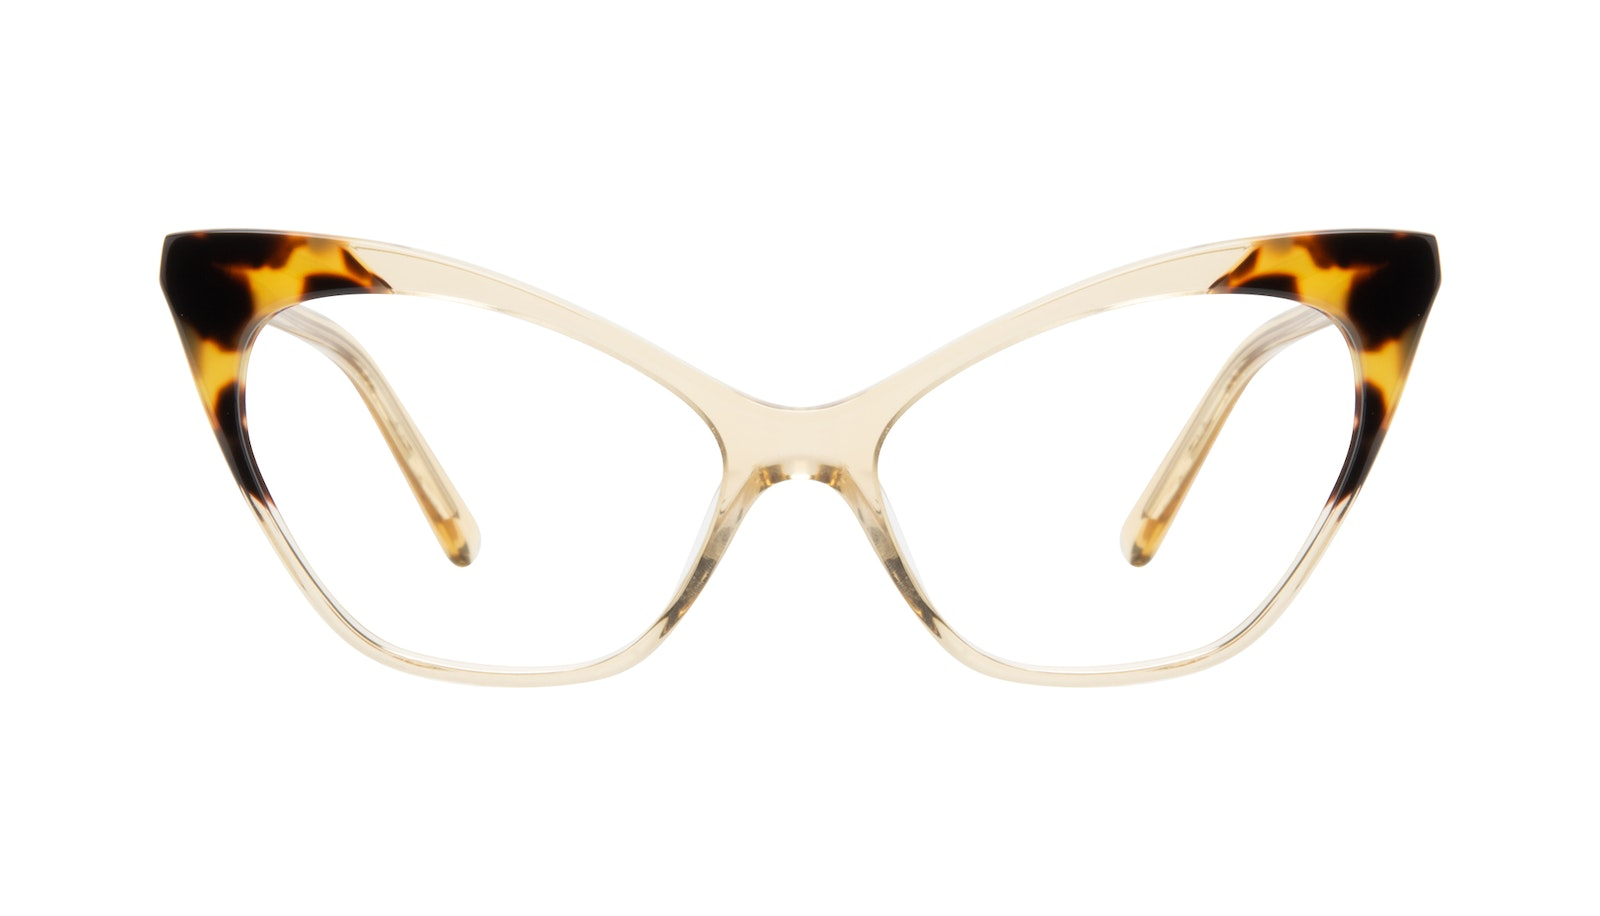 Affordable Fashion Glasses Cat Eye Eyeglasses Women Gossip Golden Tort